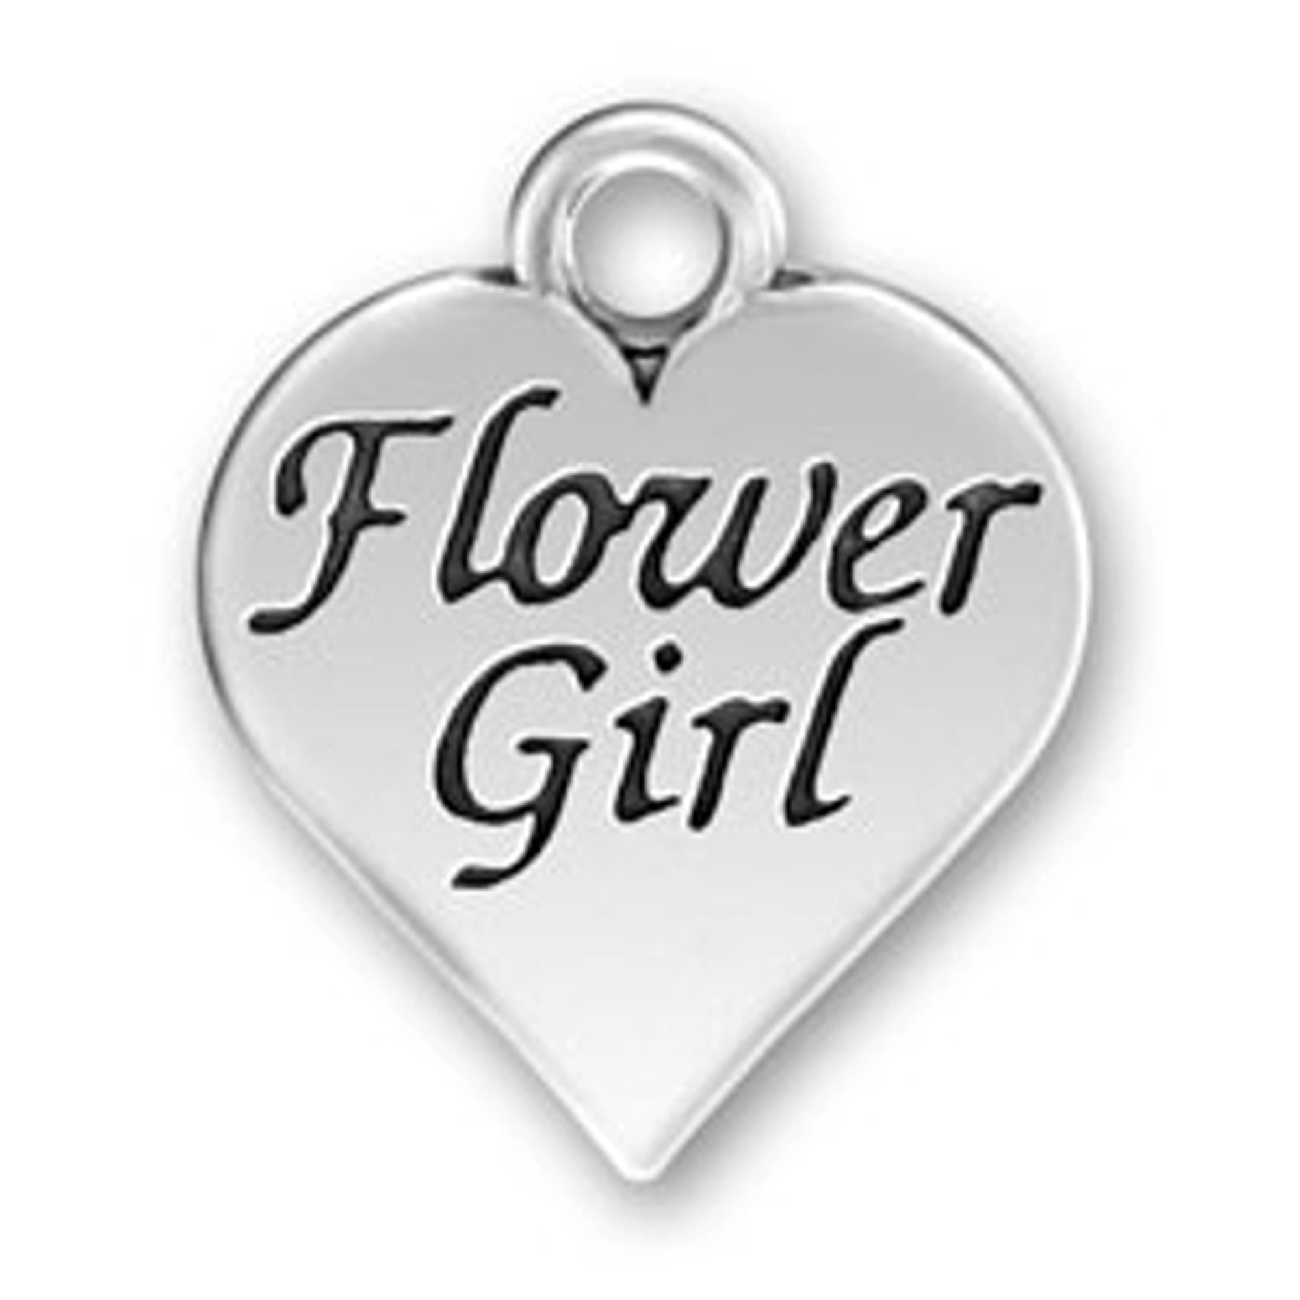 Heart Shaped Flower Girl Message Word Charm